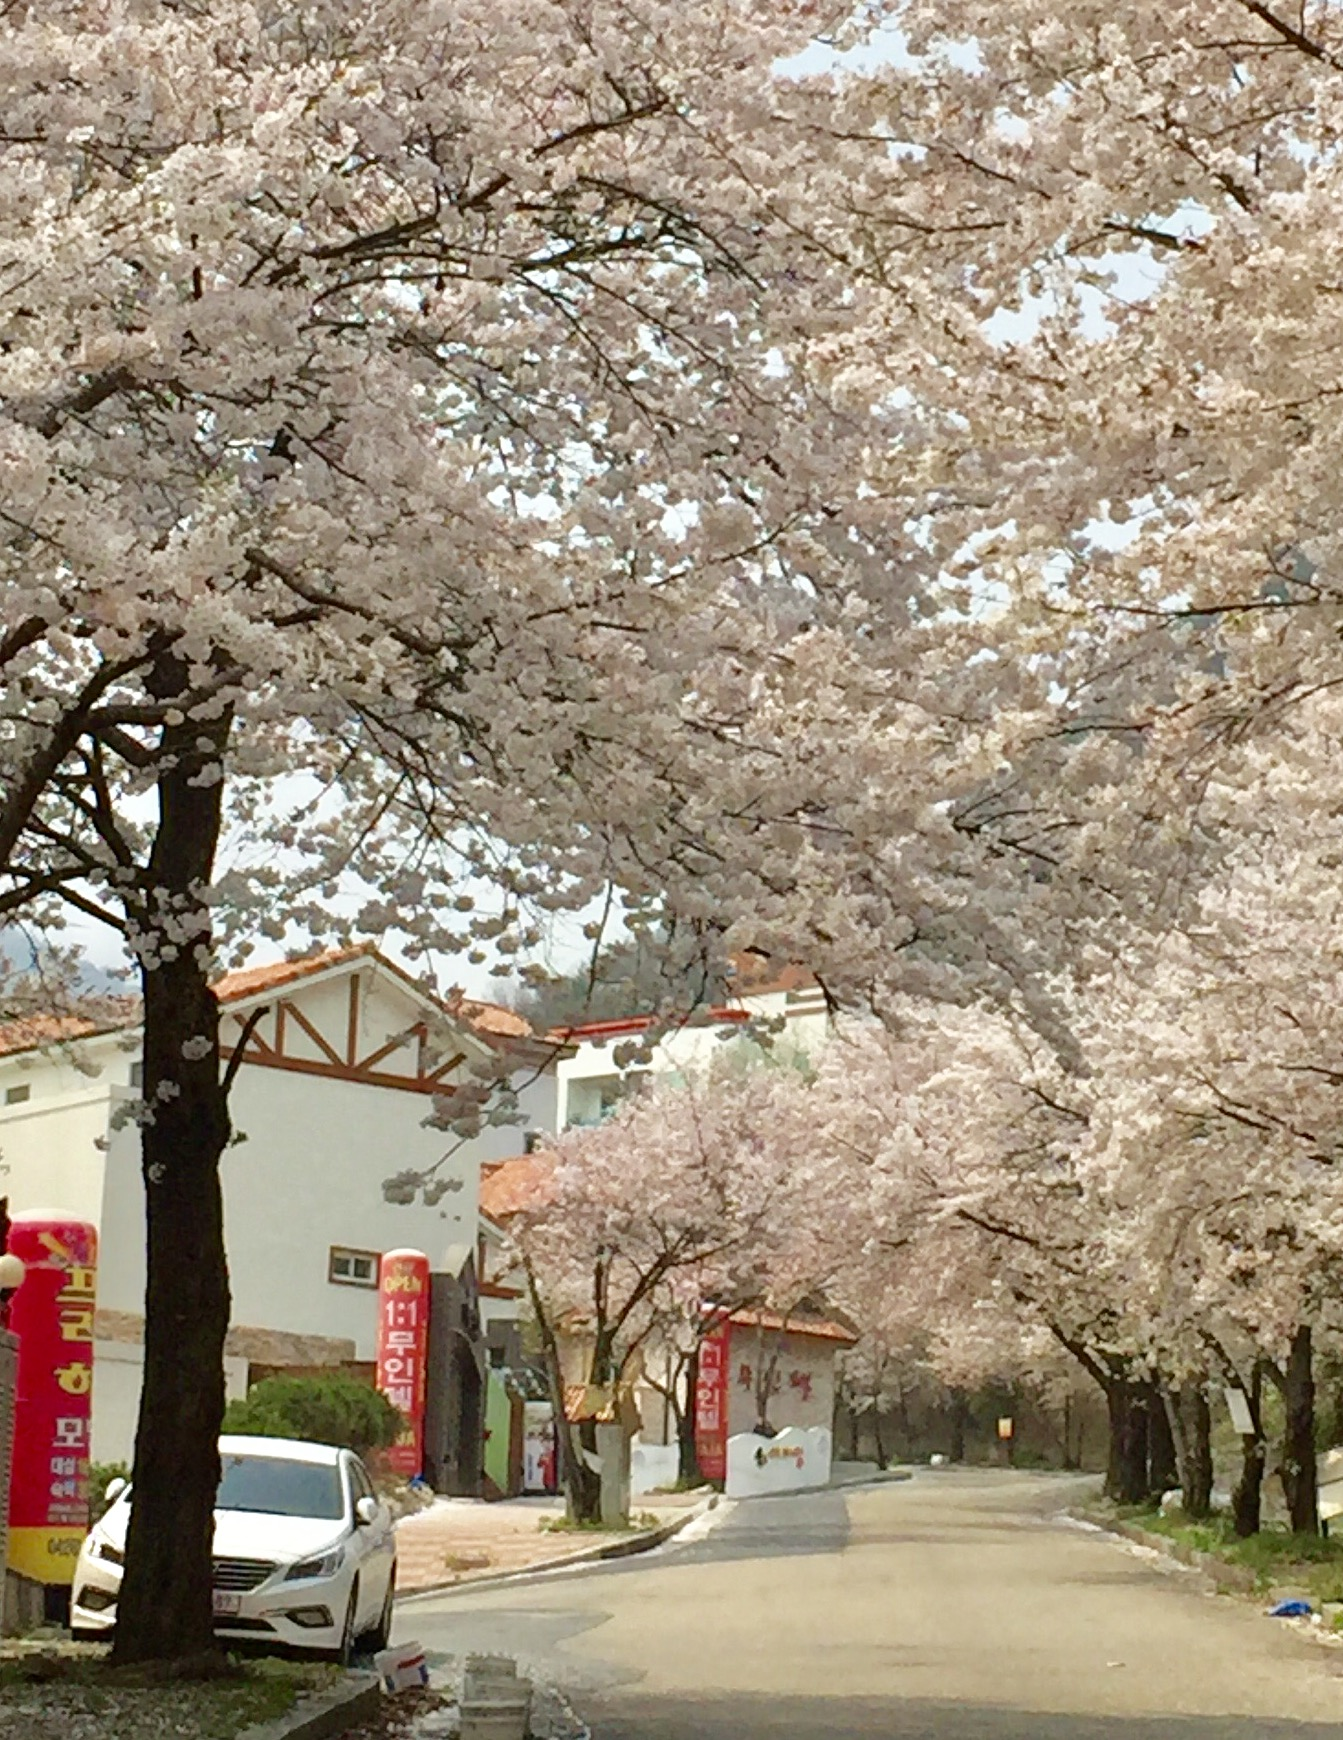 The entrance to this muintel surrounded by blossom trees.